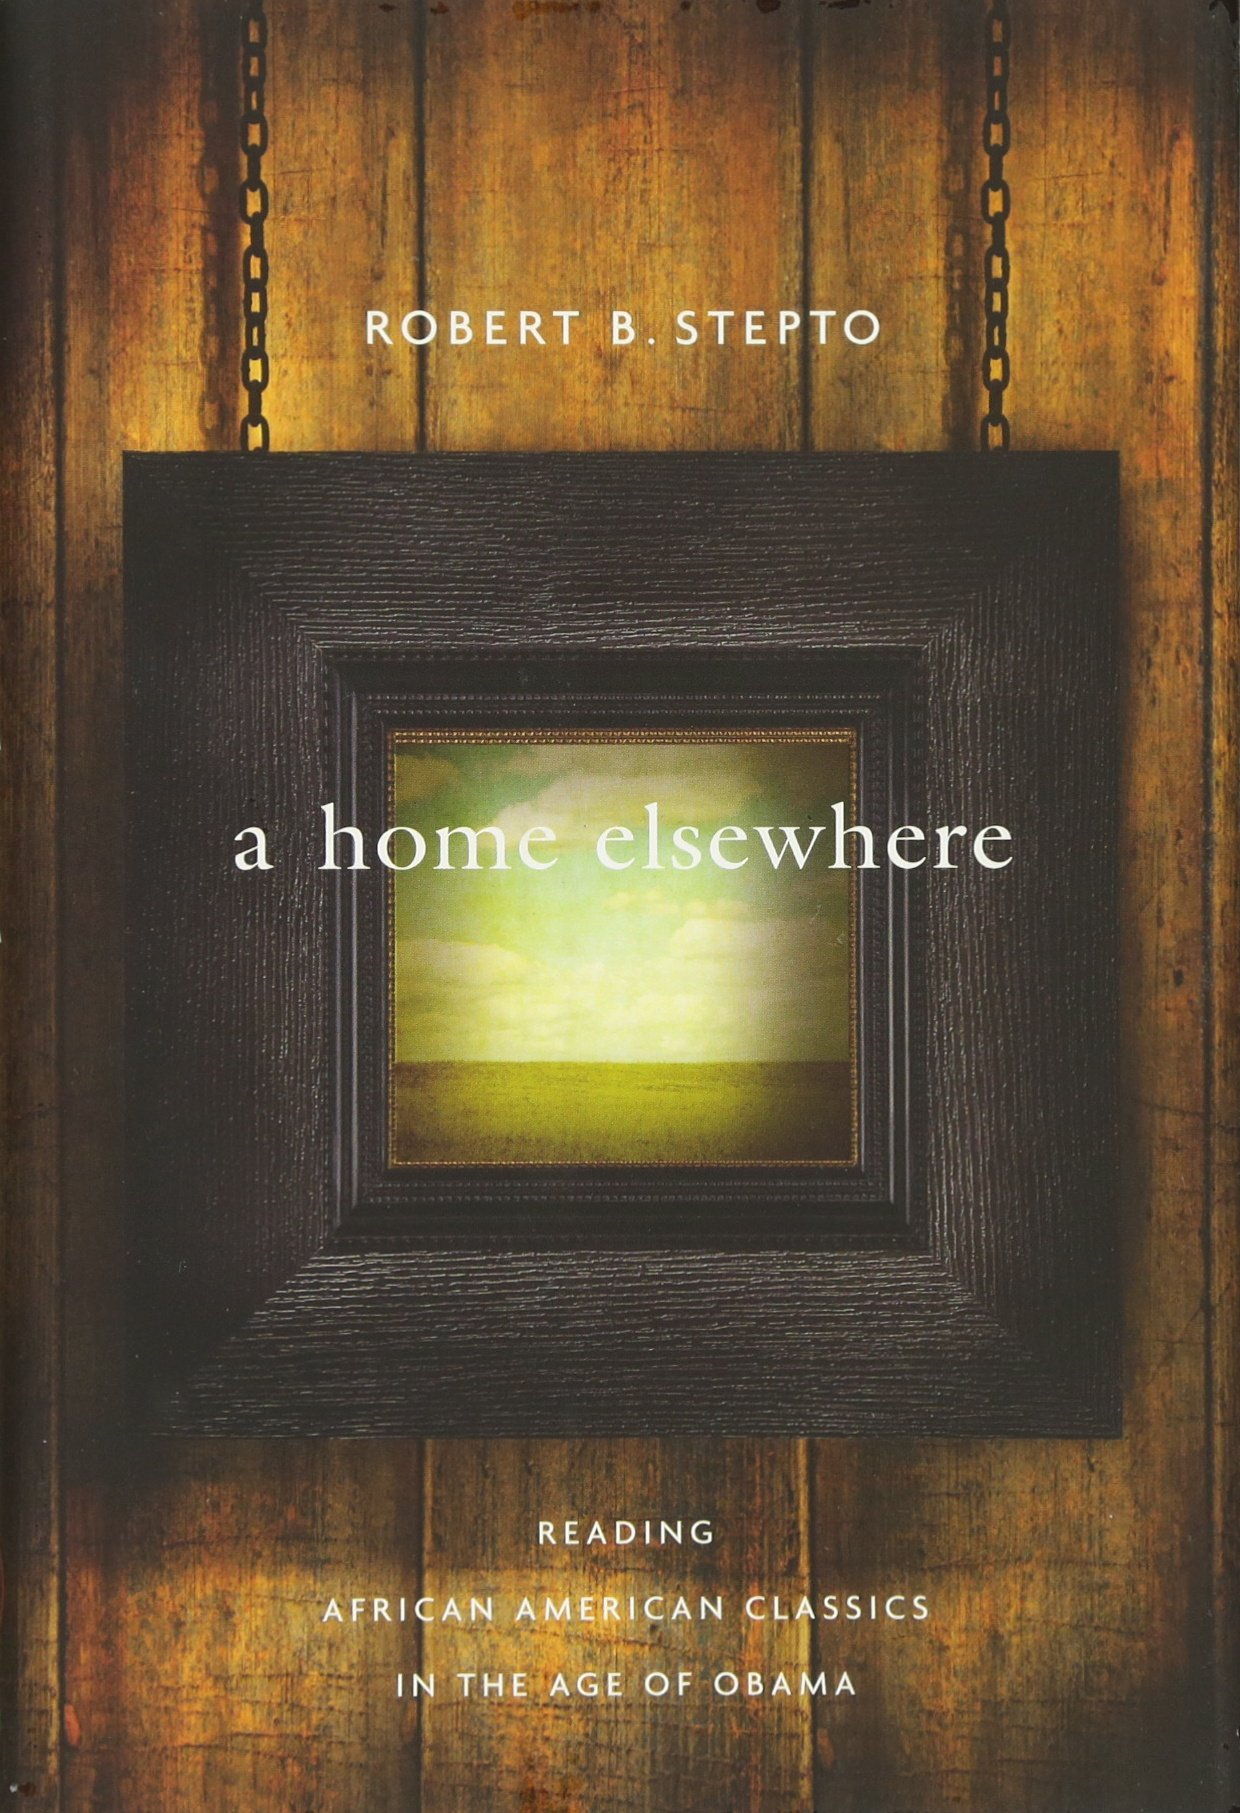 amazon com a home elsewhere reading african american classics in